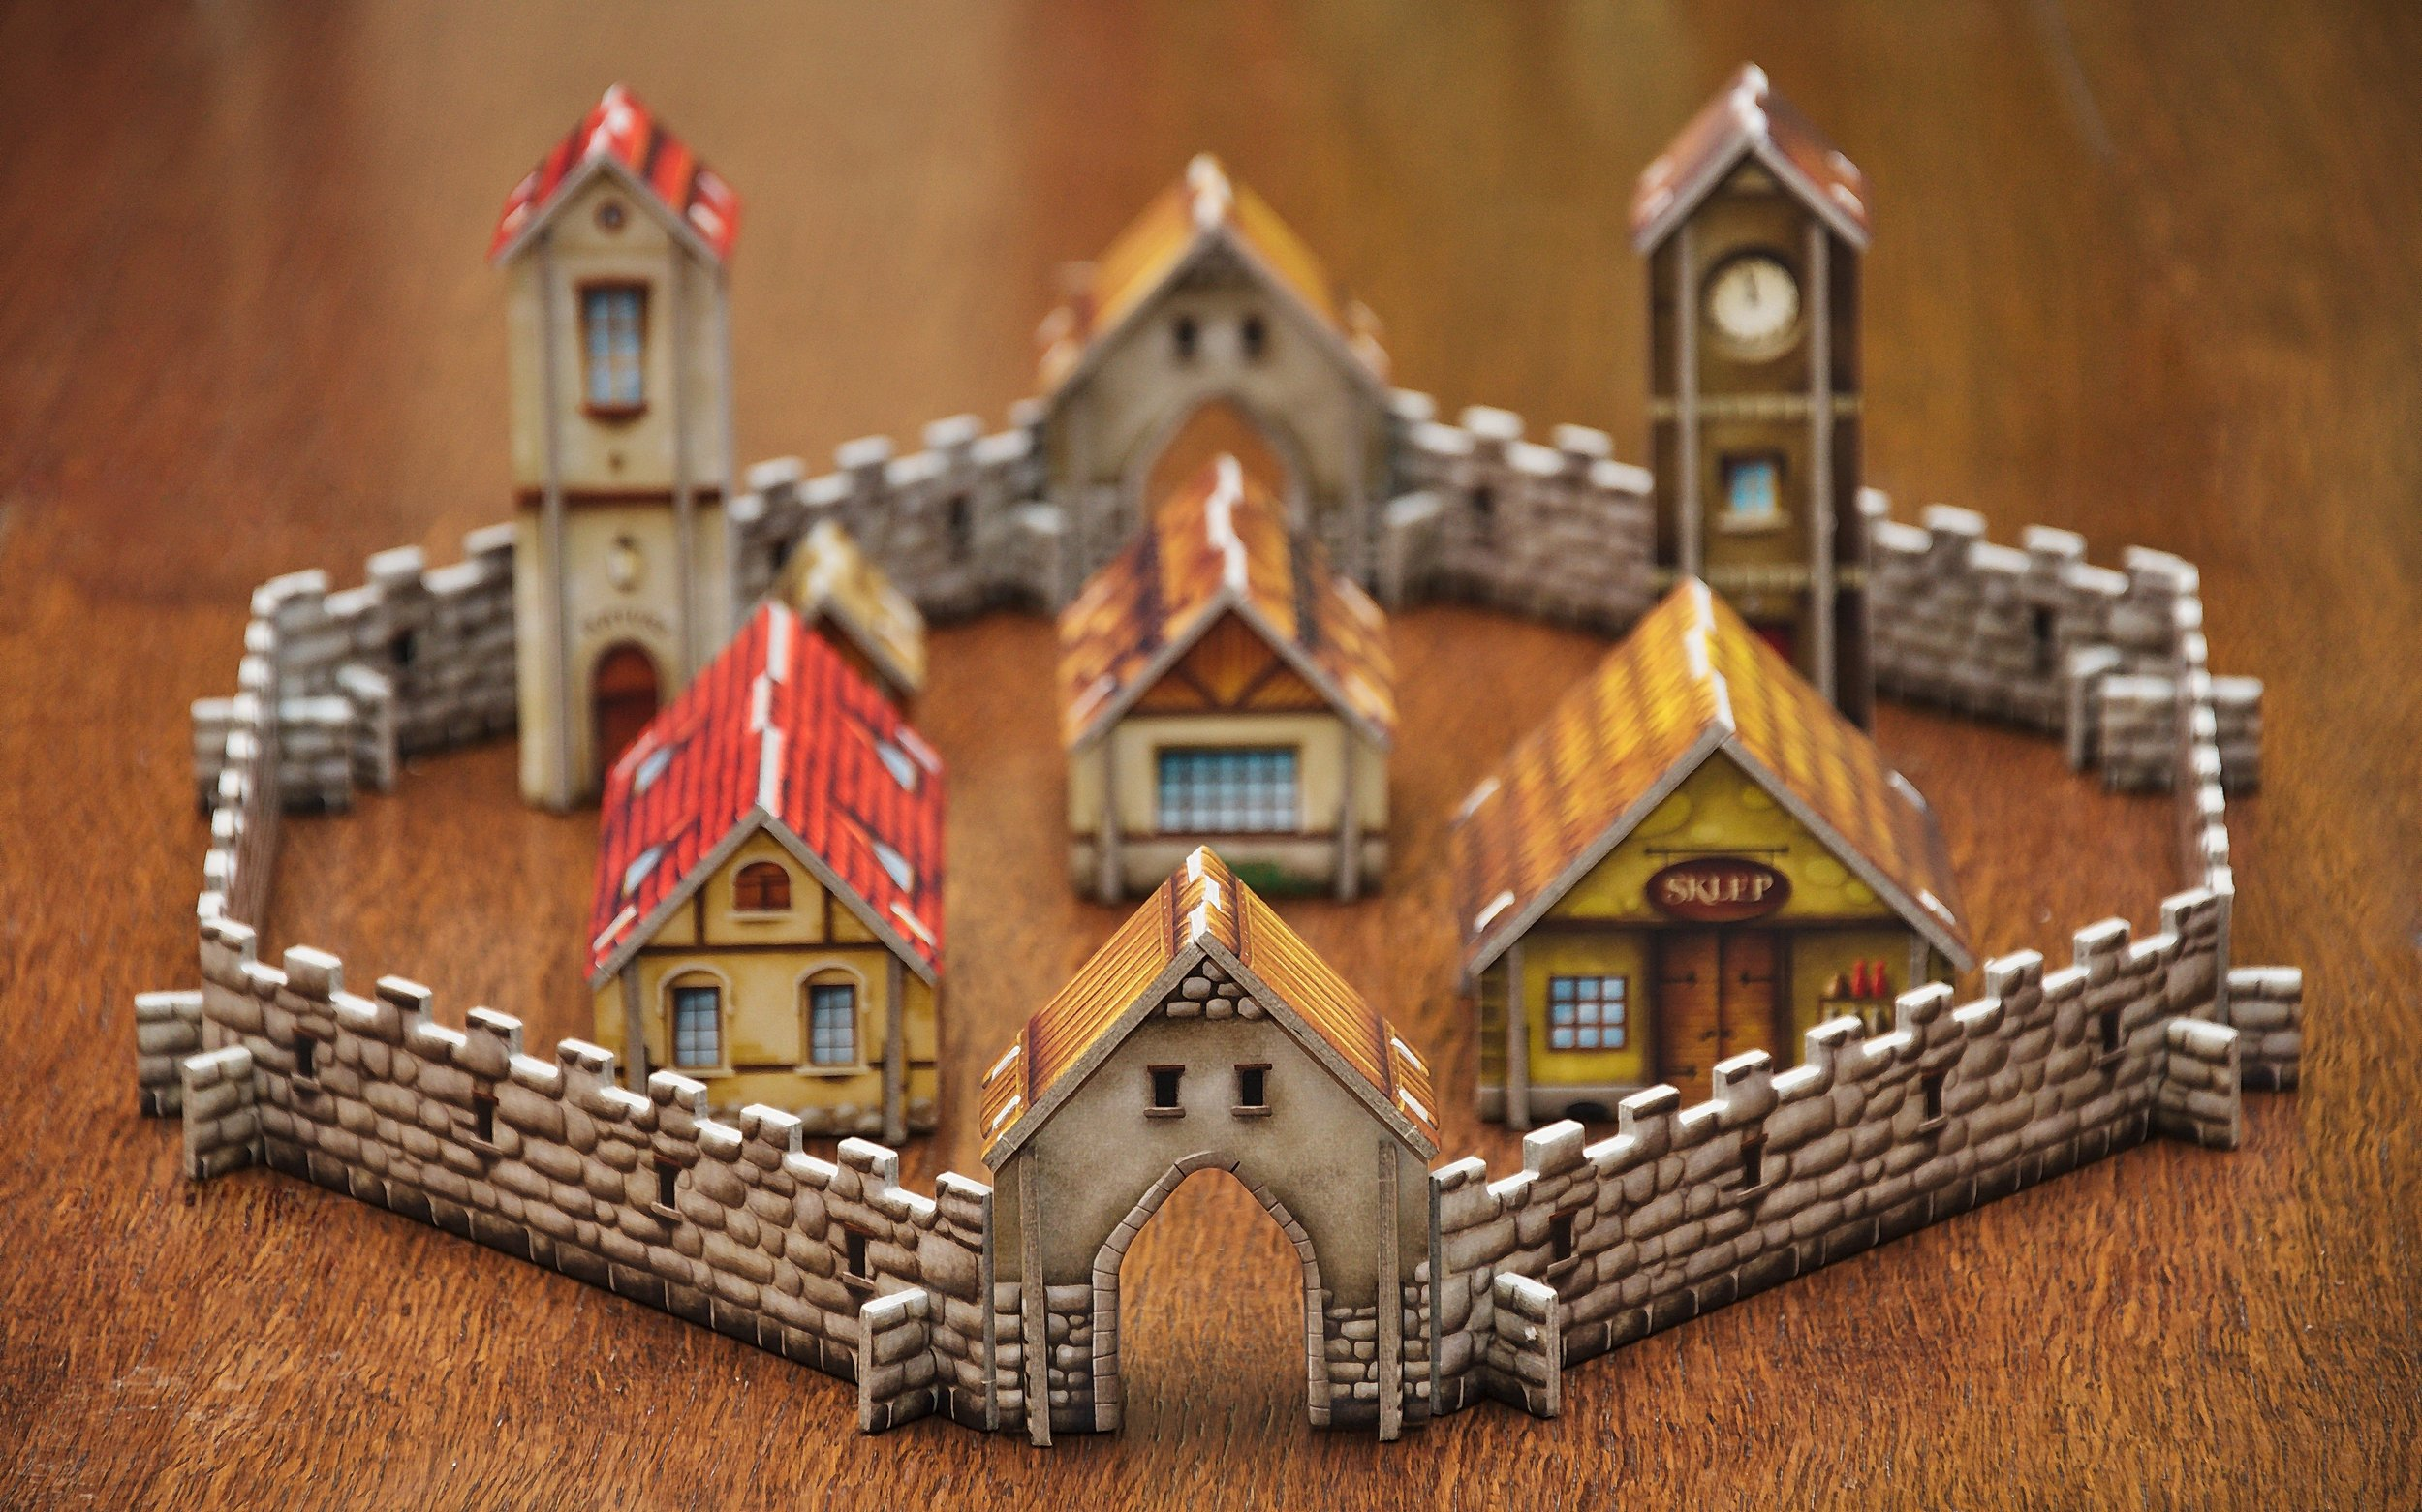 Playful Toy Village with Church